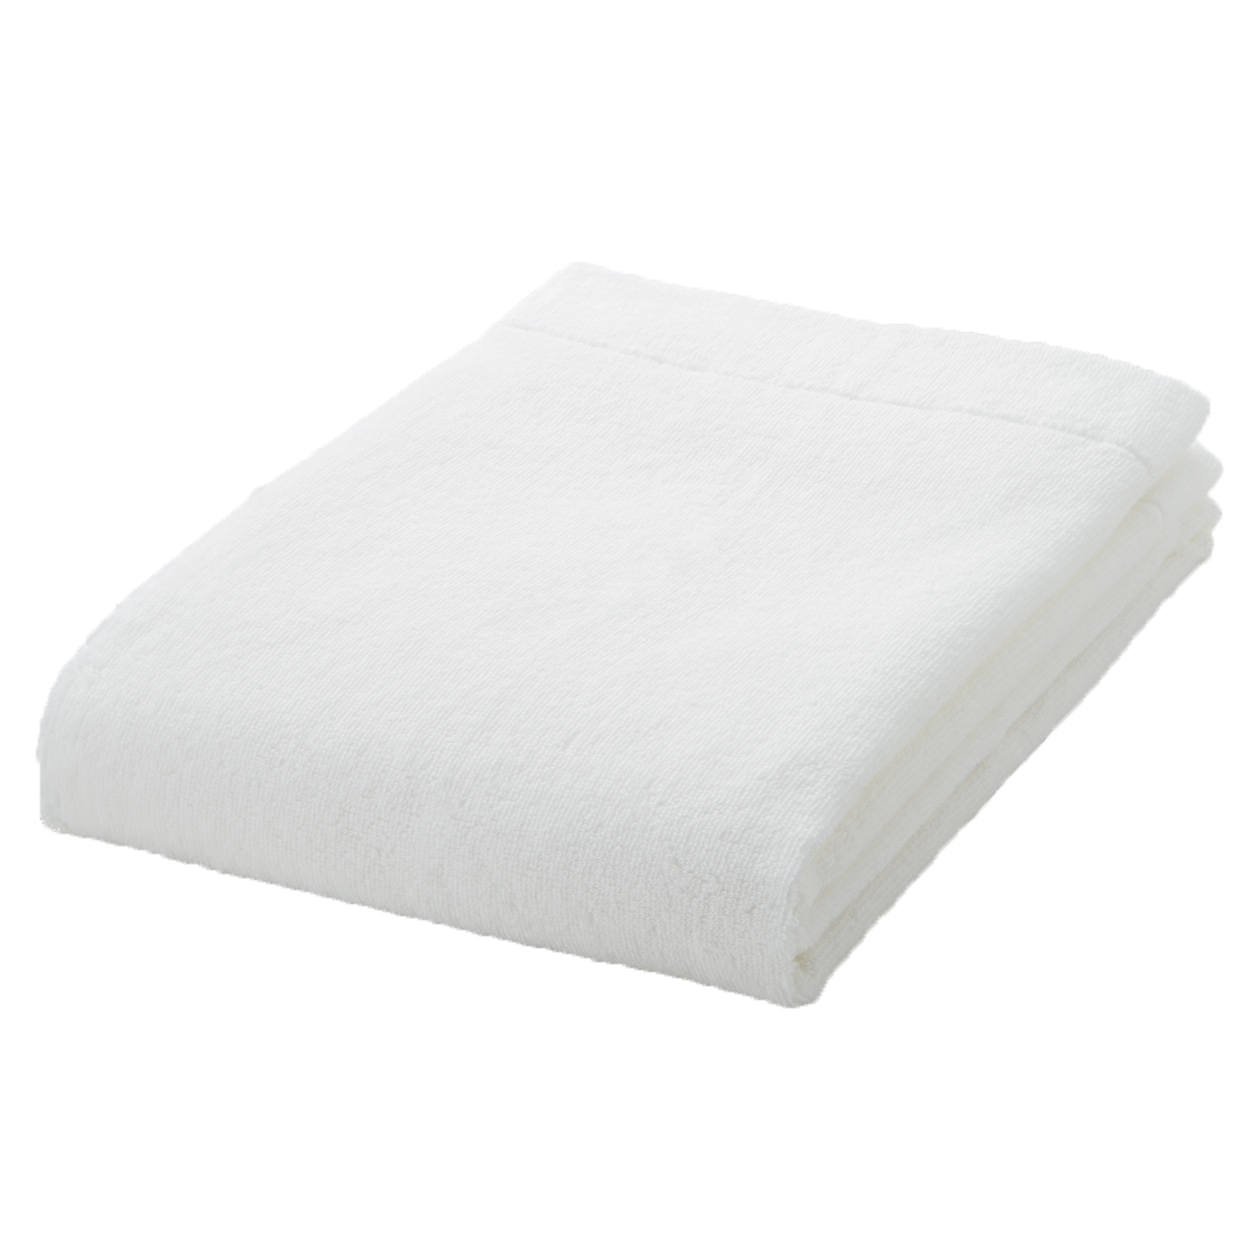 off white thin Small Bath towel